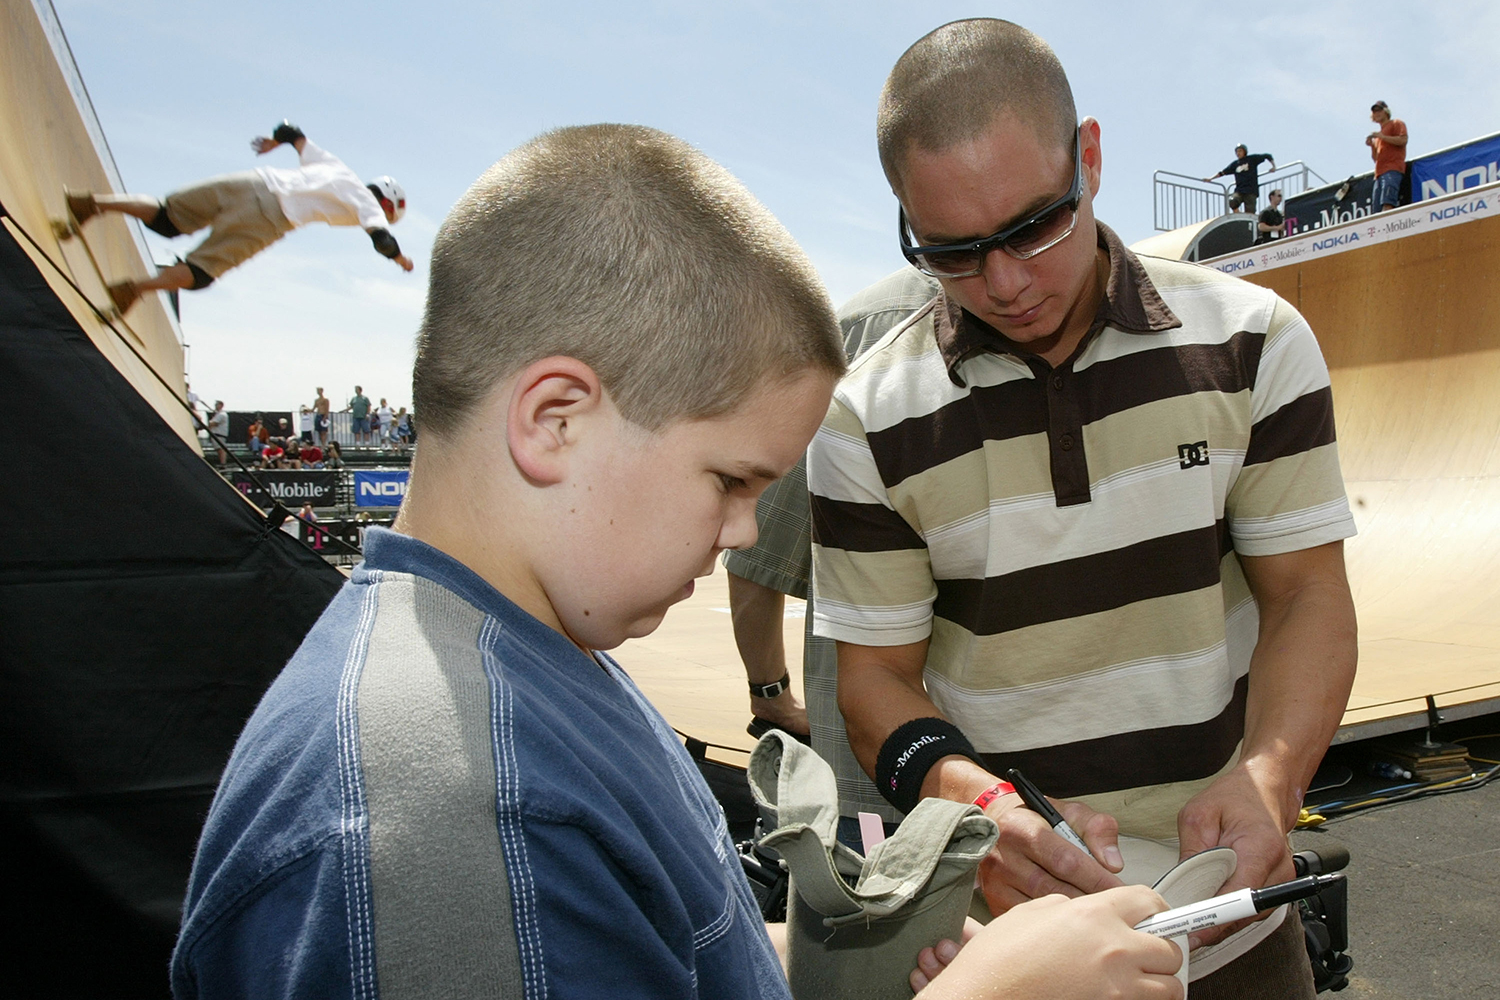 Dave Mirra signs an autograph for a fan at Randalls Island.